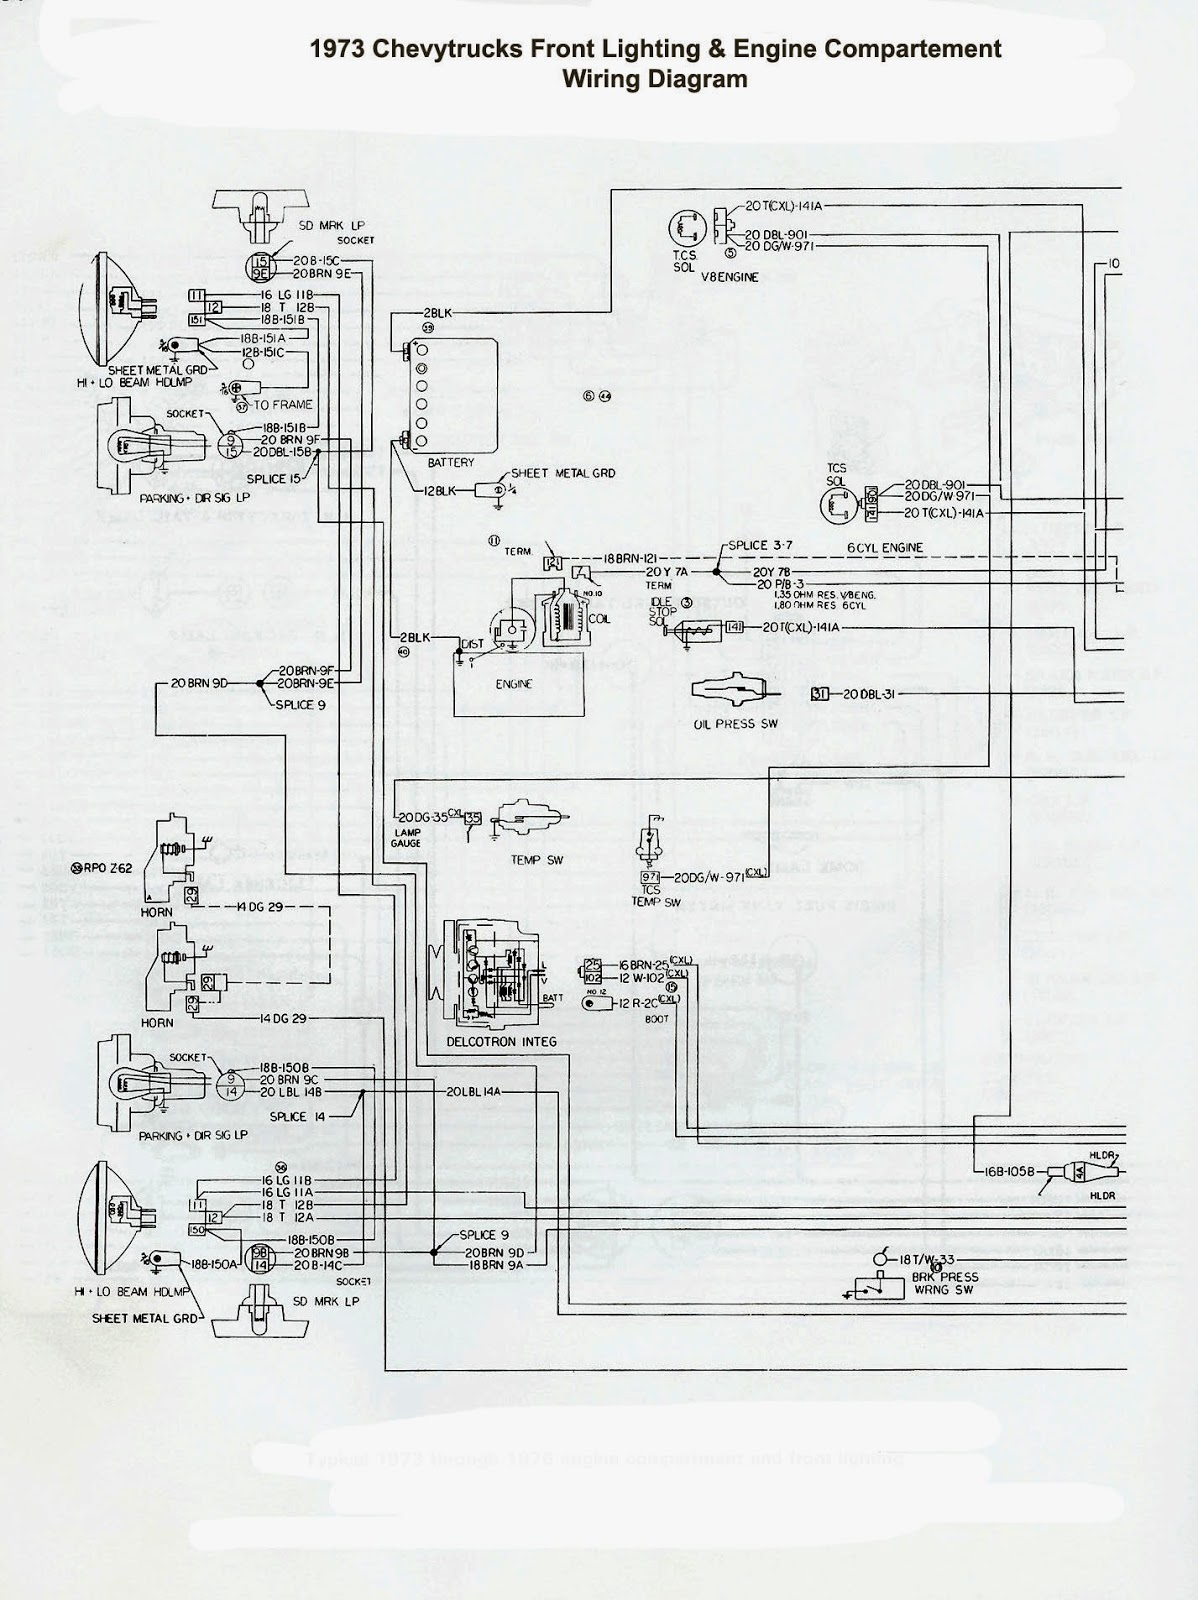 engine compartement wiring diagram hopefully this diagram will help you assembly your chevy truck wiring diagram for available more detail electrical  [ 1198 x 1600 Pixel ]